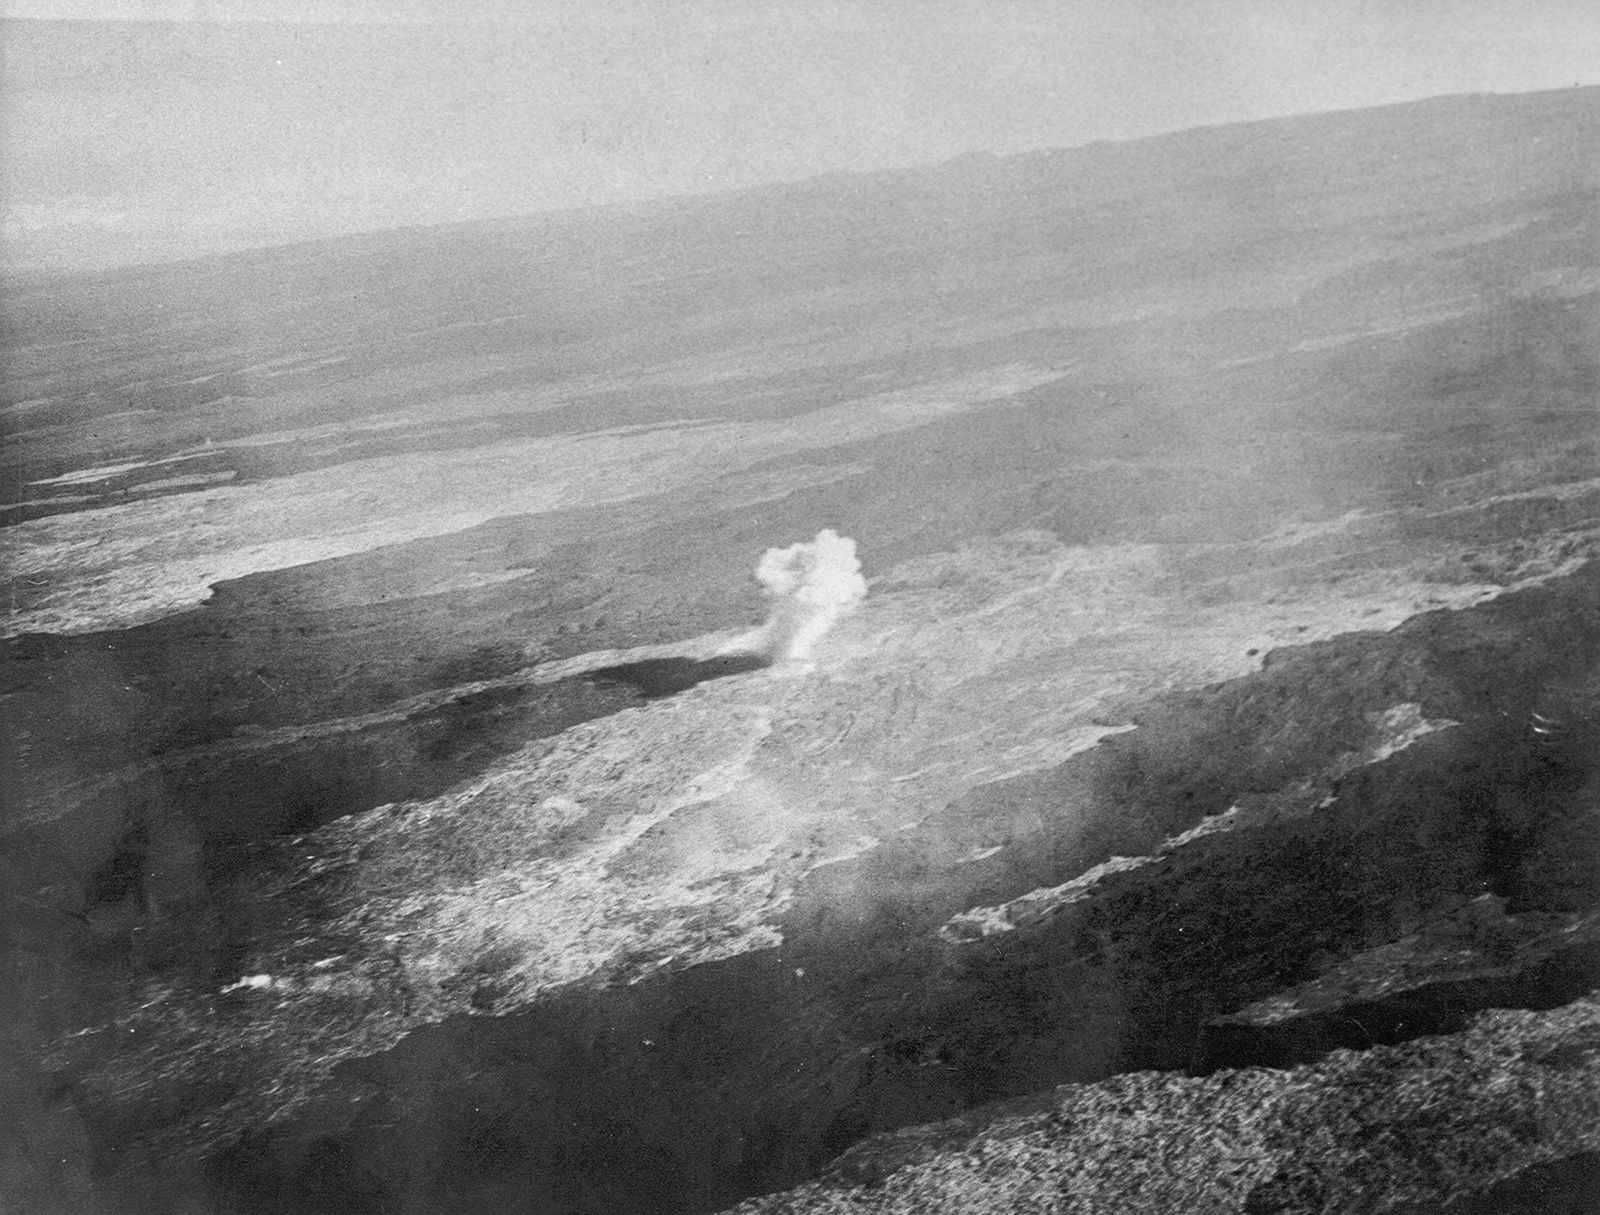 Detonation of a bomb at Mauno Loa during the bombardment of the source of the lava flow on December 27, 1935 (located at a height of 2,590 m) - Photo by Army Air Corps, 11th Photo Section. PC: USGS